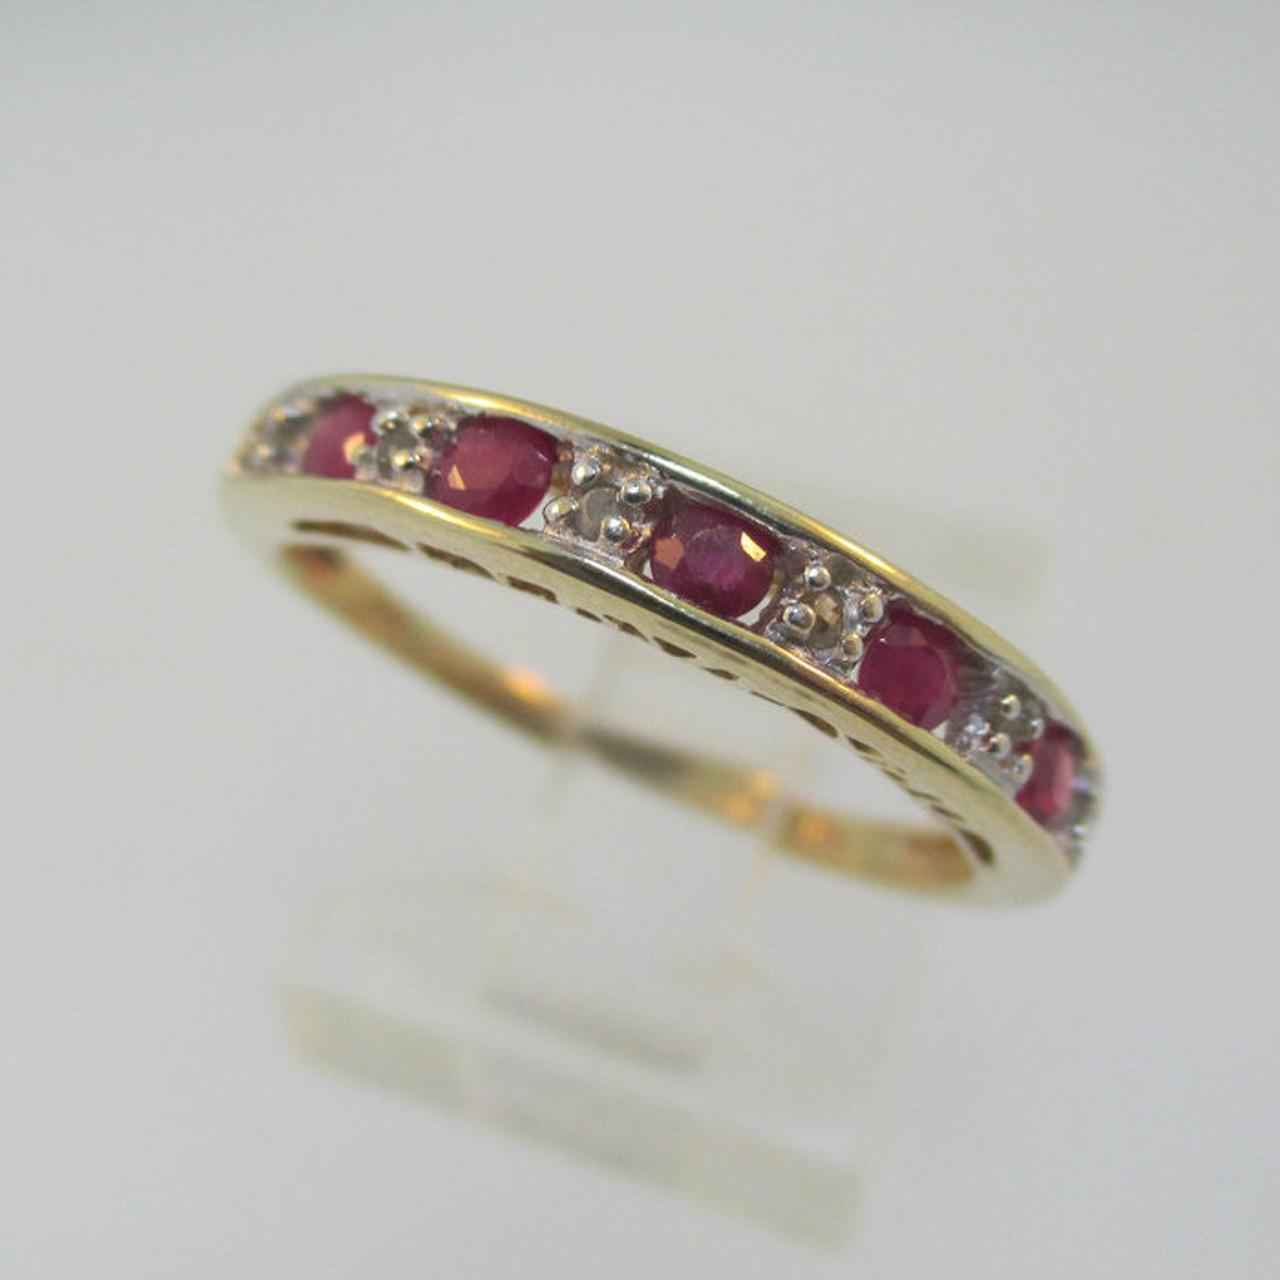 10k Yellow Gold Ruby And Diamond Ring With I Love You In Band Size 7